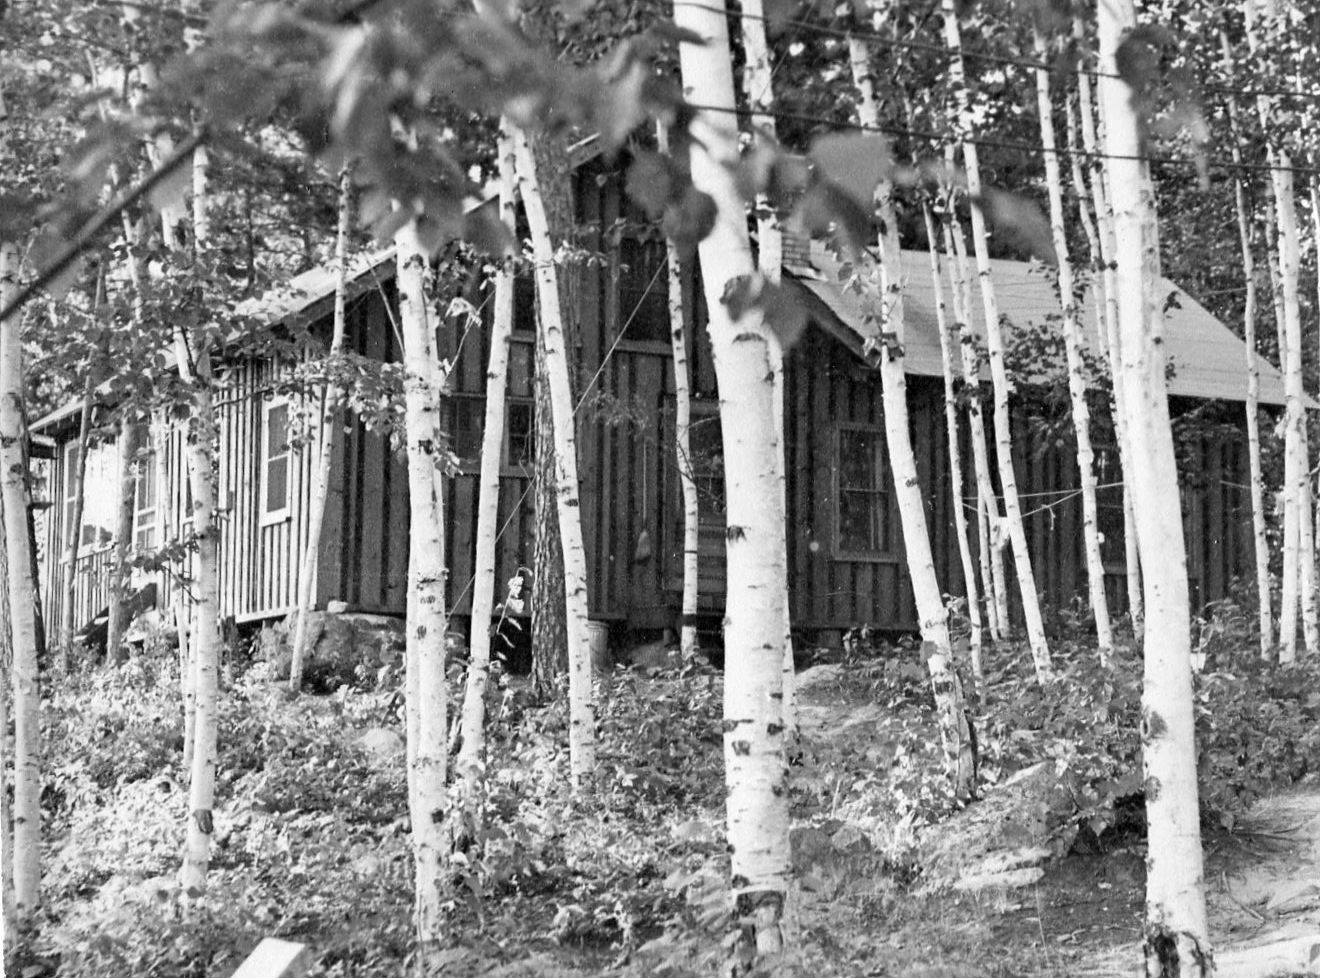 Resort cabin exterior, black and white.